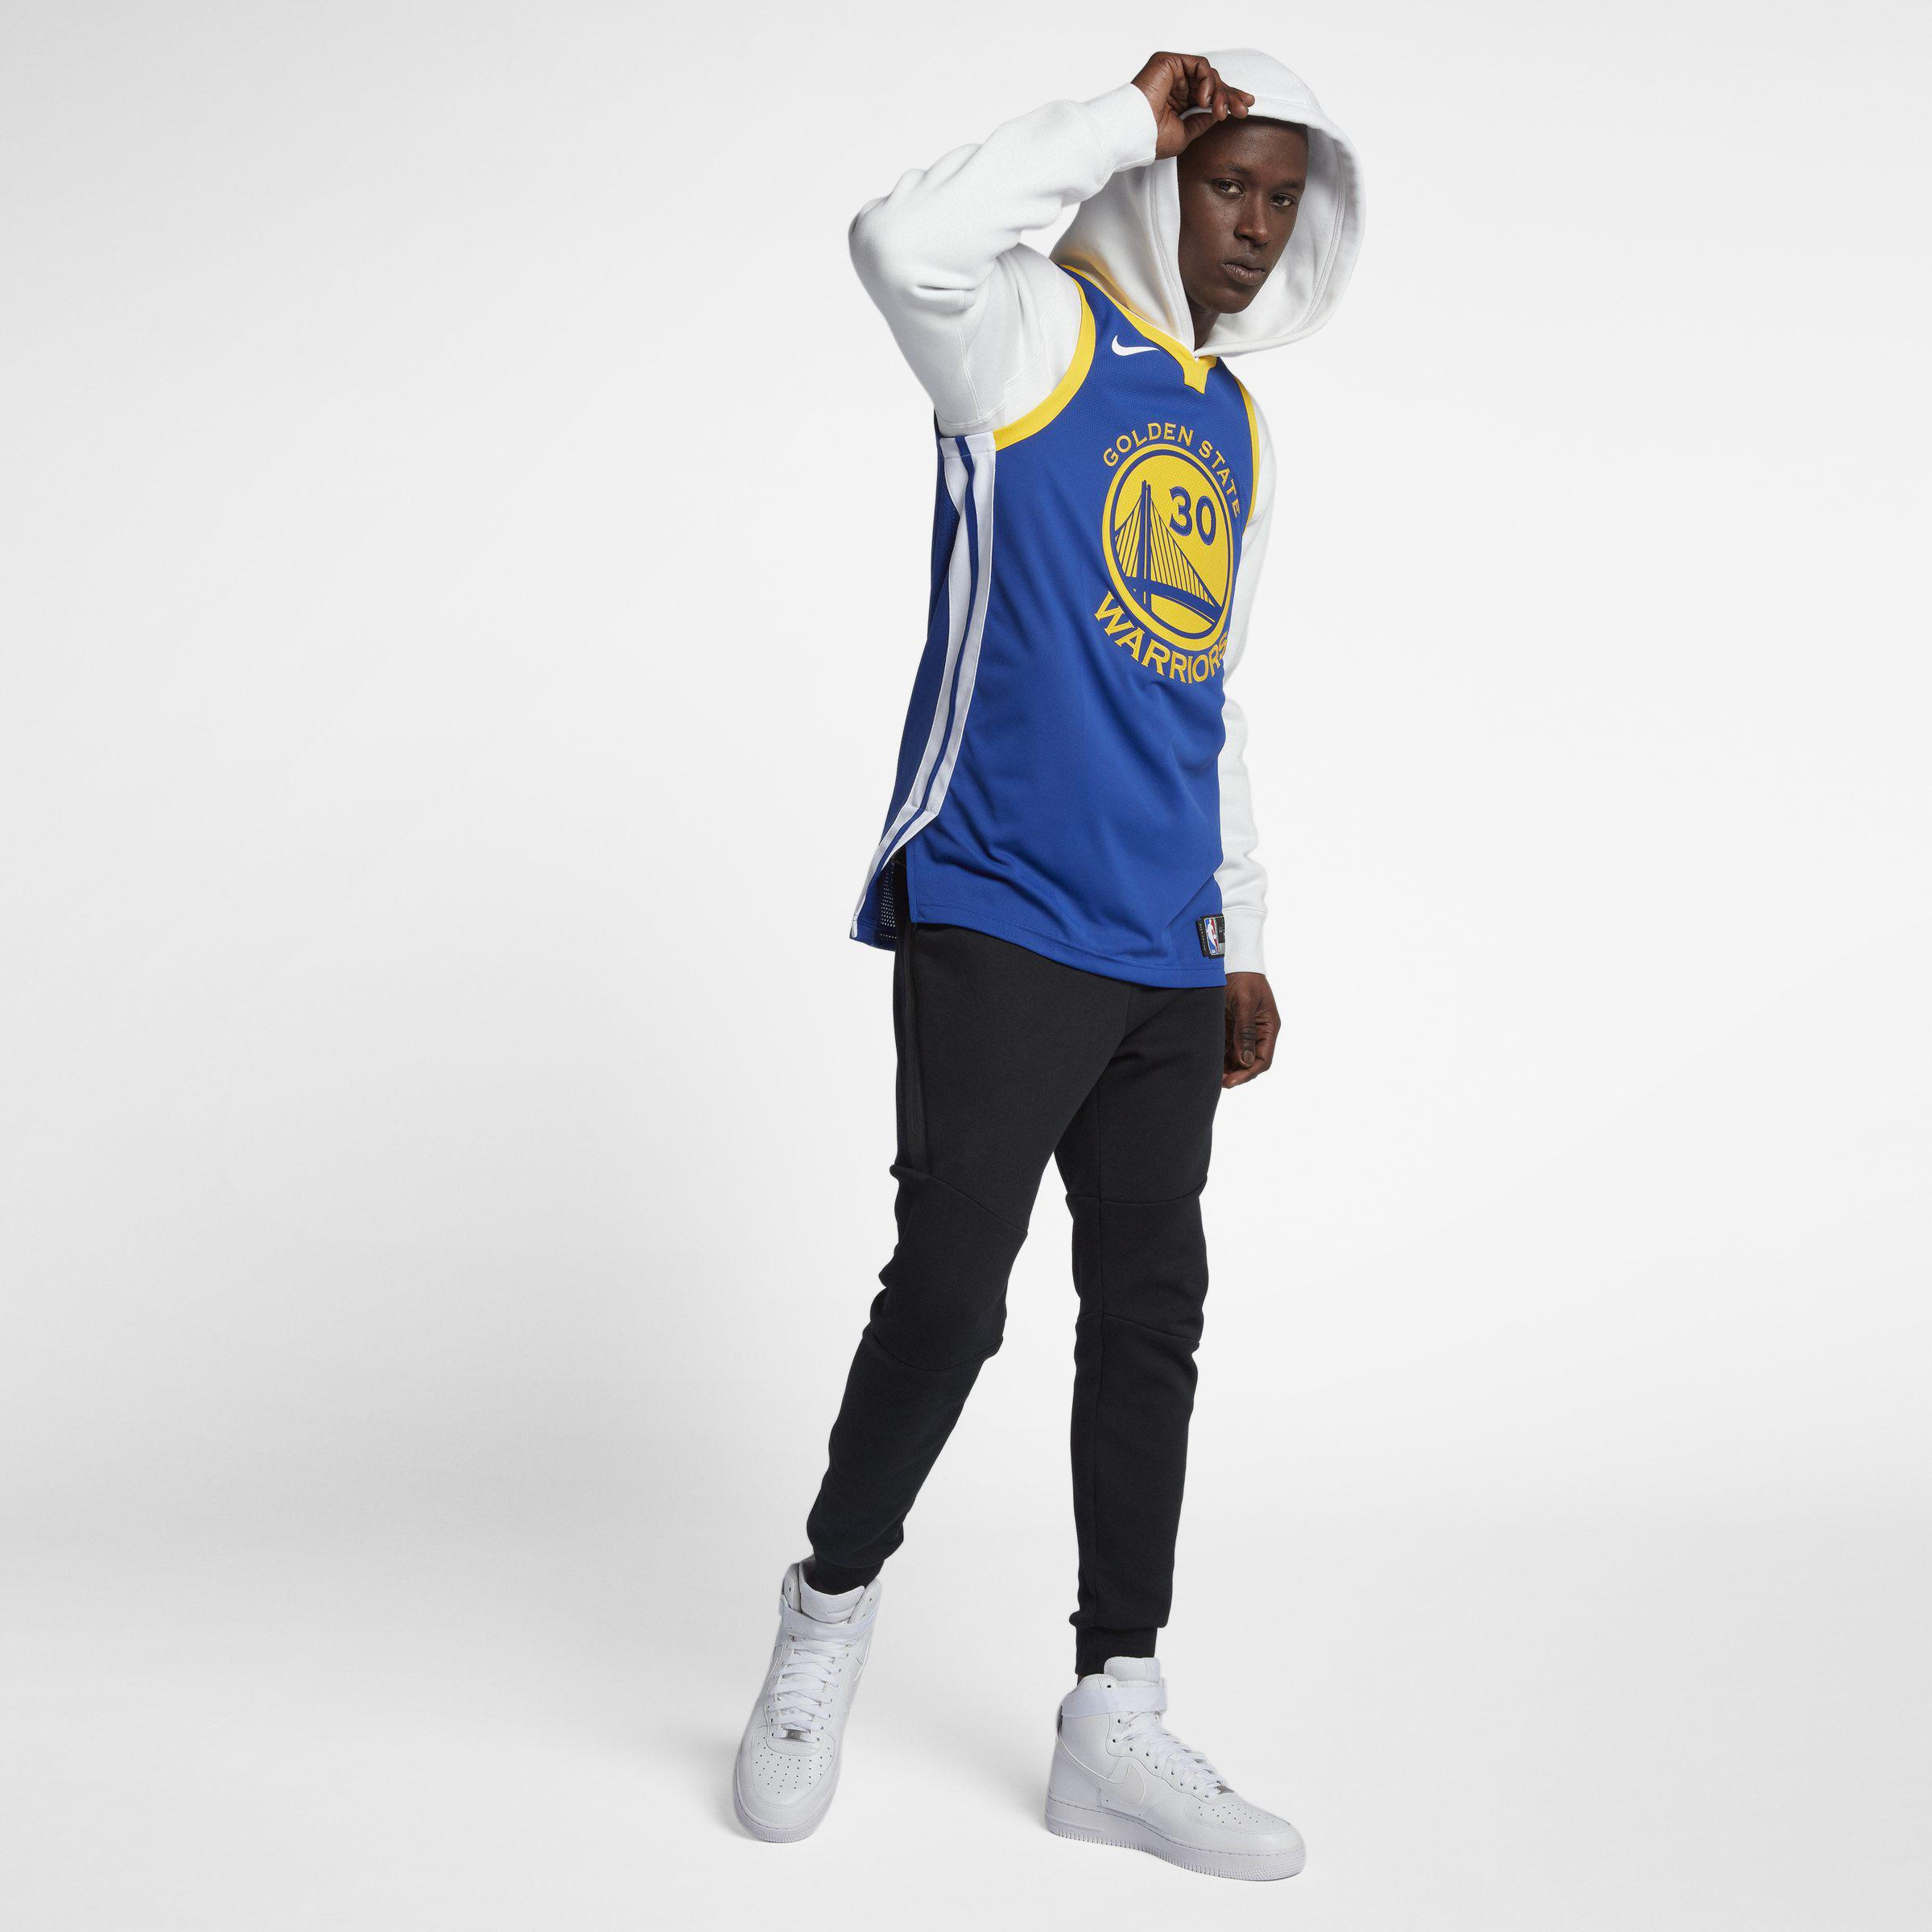 ada4c1767 Nike. Blue Stephen Curry Icon Edition Authentic Jersey (golden State  Warriors) Men s ...